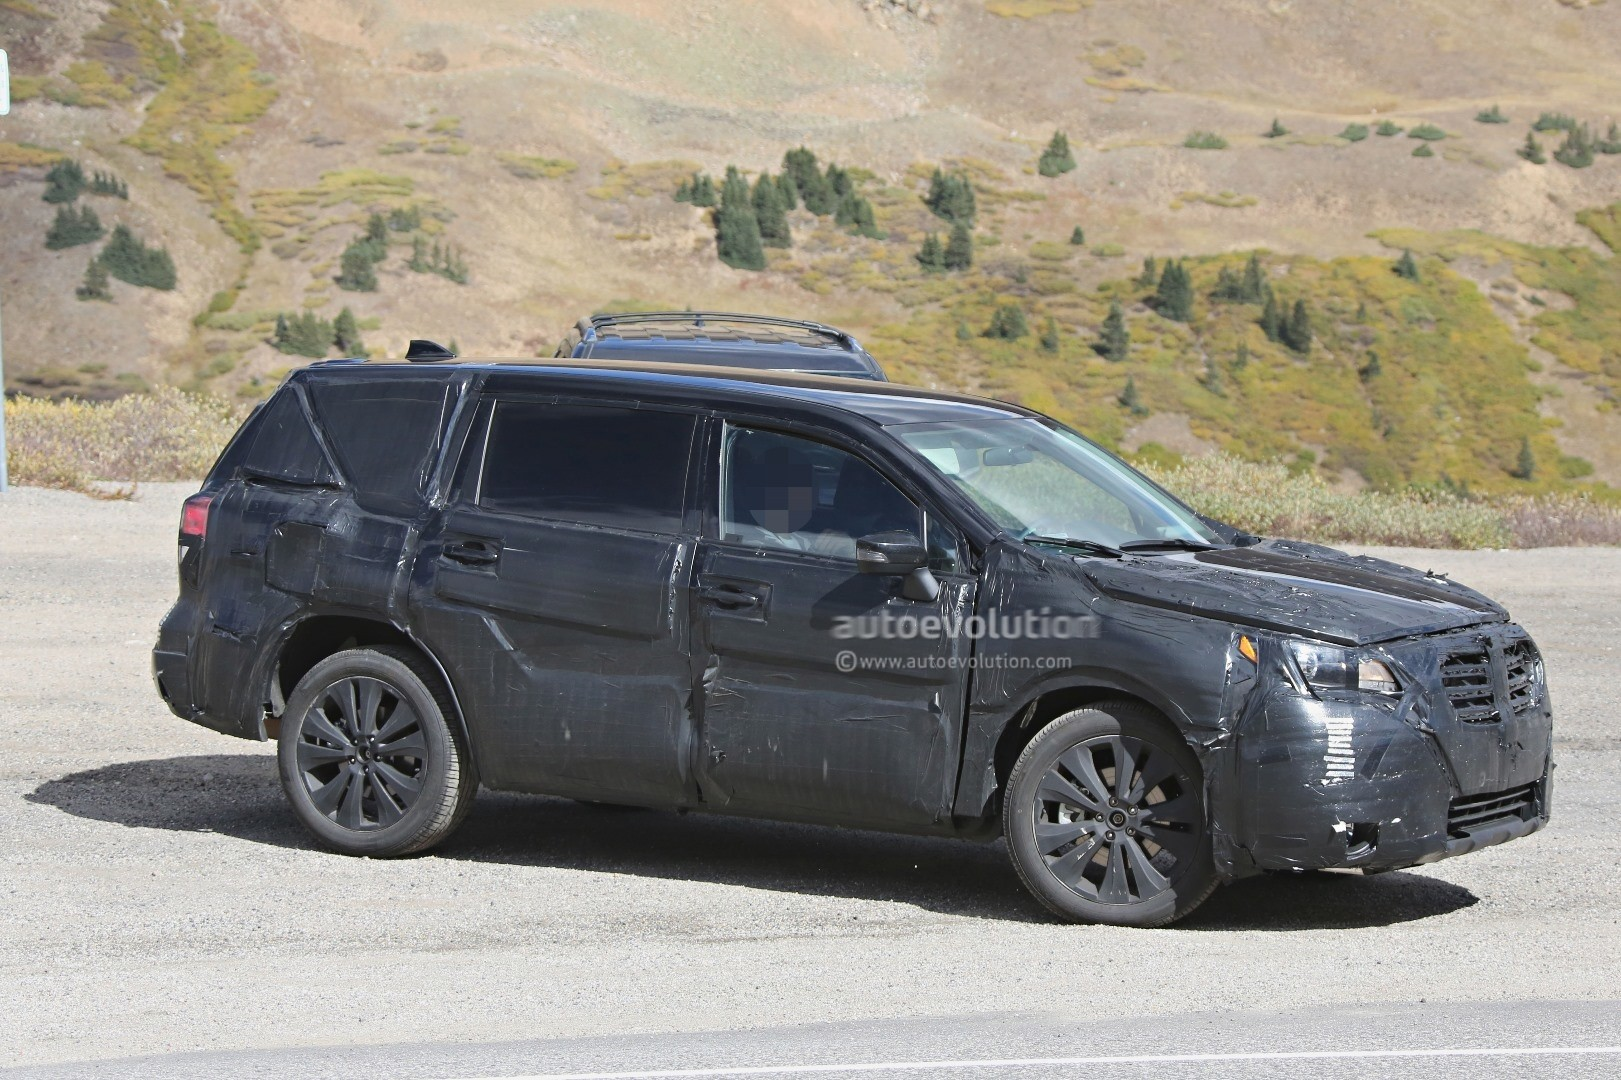 2019 Subaru Tribeca Heir Spied Benchmarking Against Mazda